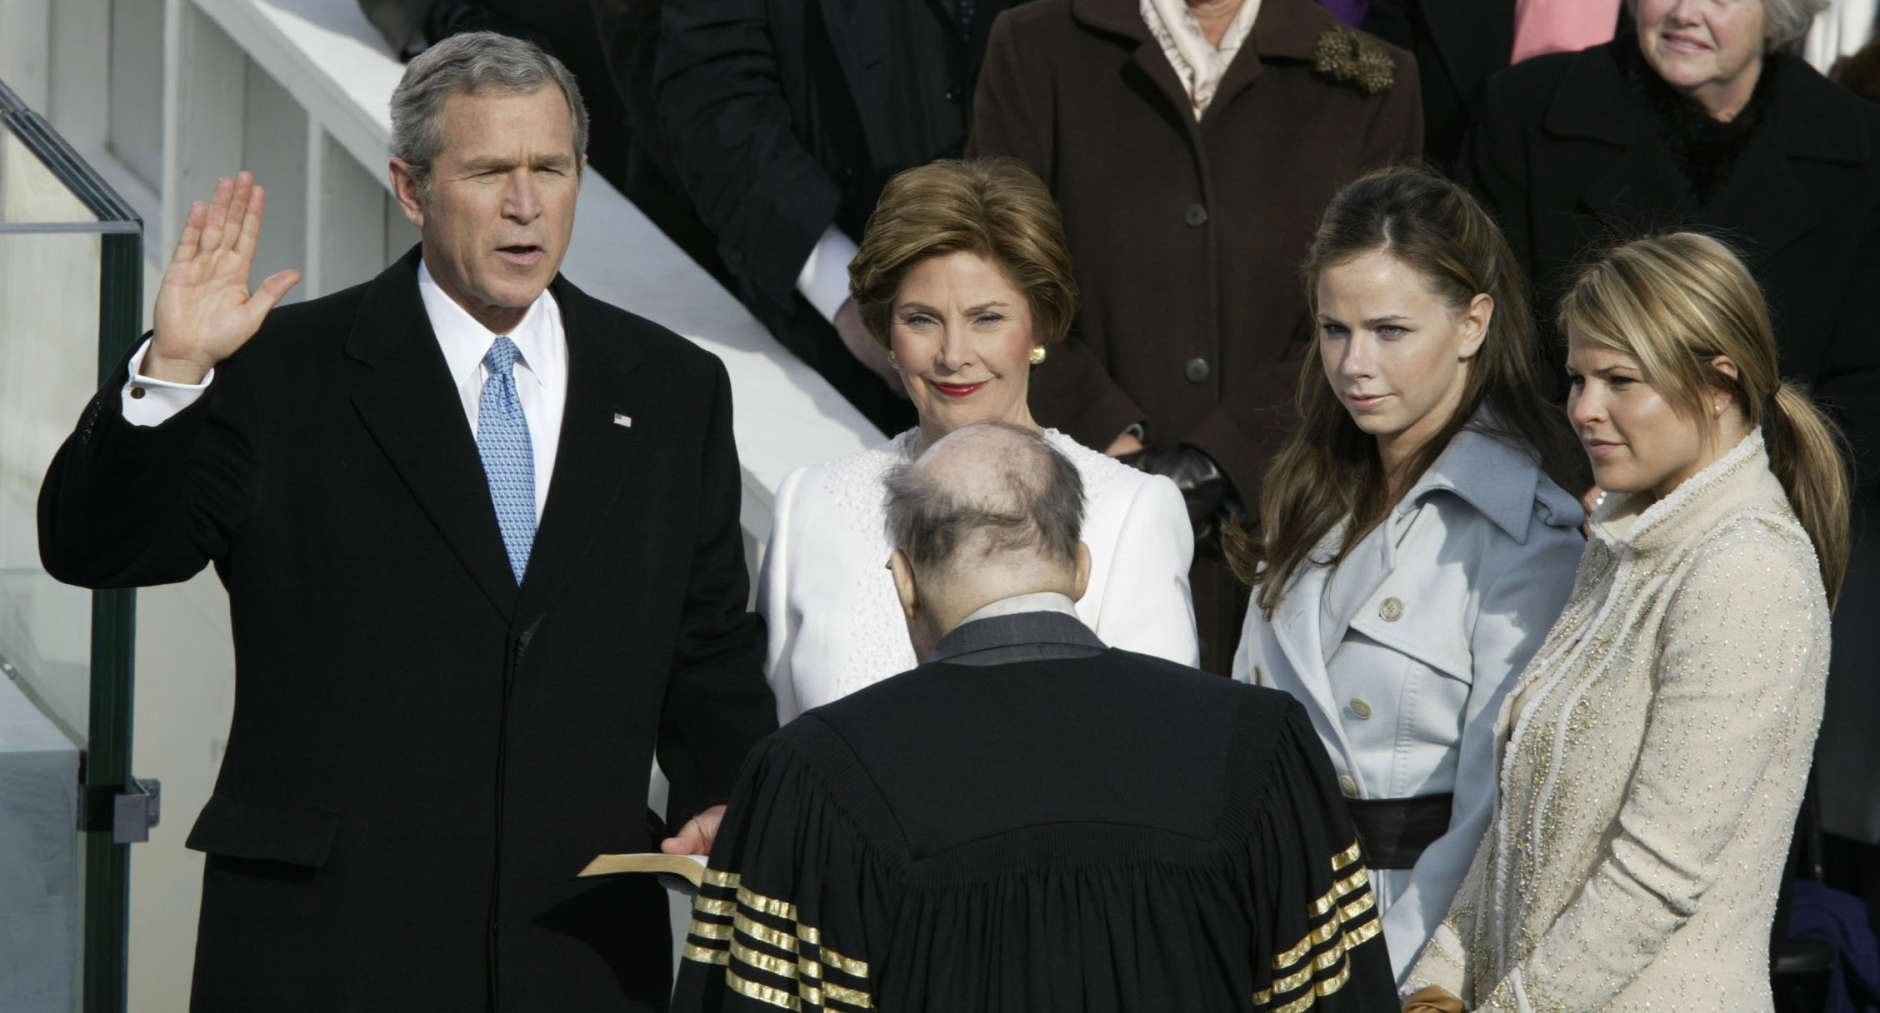 President Bush is sworn in by Chief Justice William Rehnquist during his inauguration on Capitol Hill Thursday, Jan.20, 2005. First lady Laura Bush holds the bible as daughters, Jenna, right, and Barbara look on. (AP Photo/Stephan Savoia)